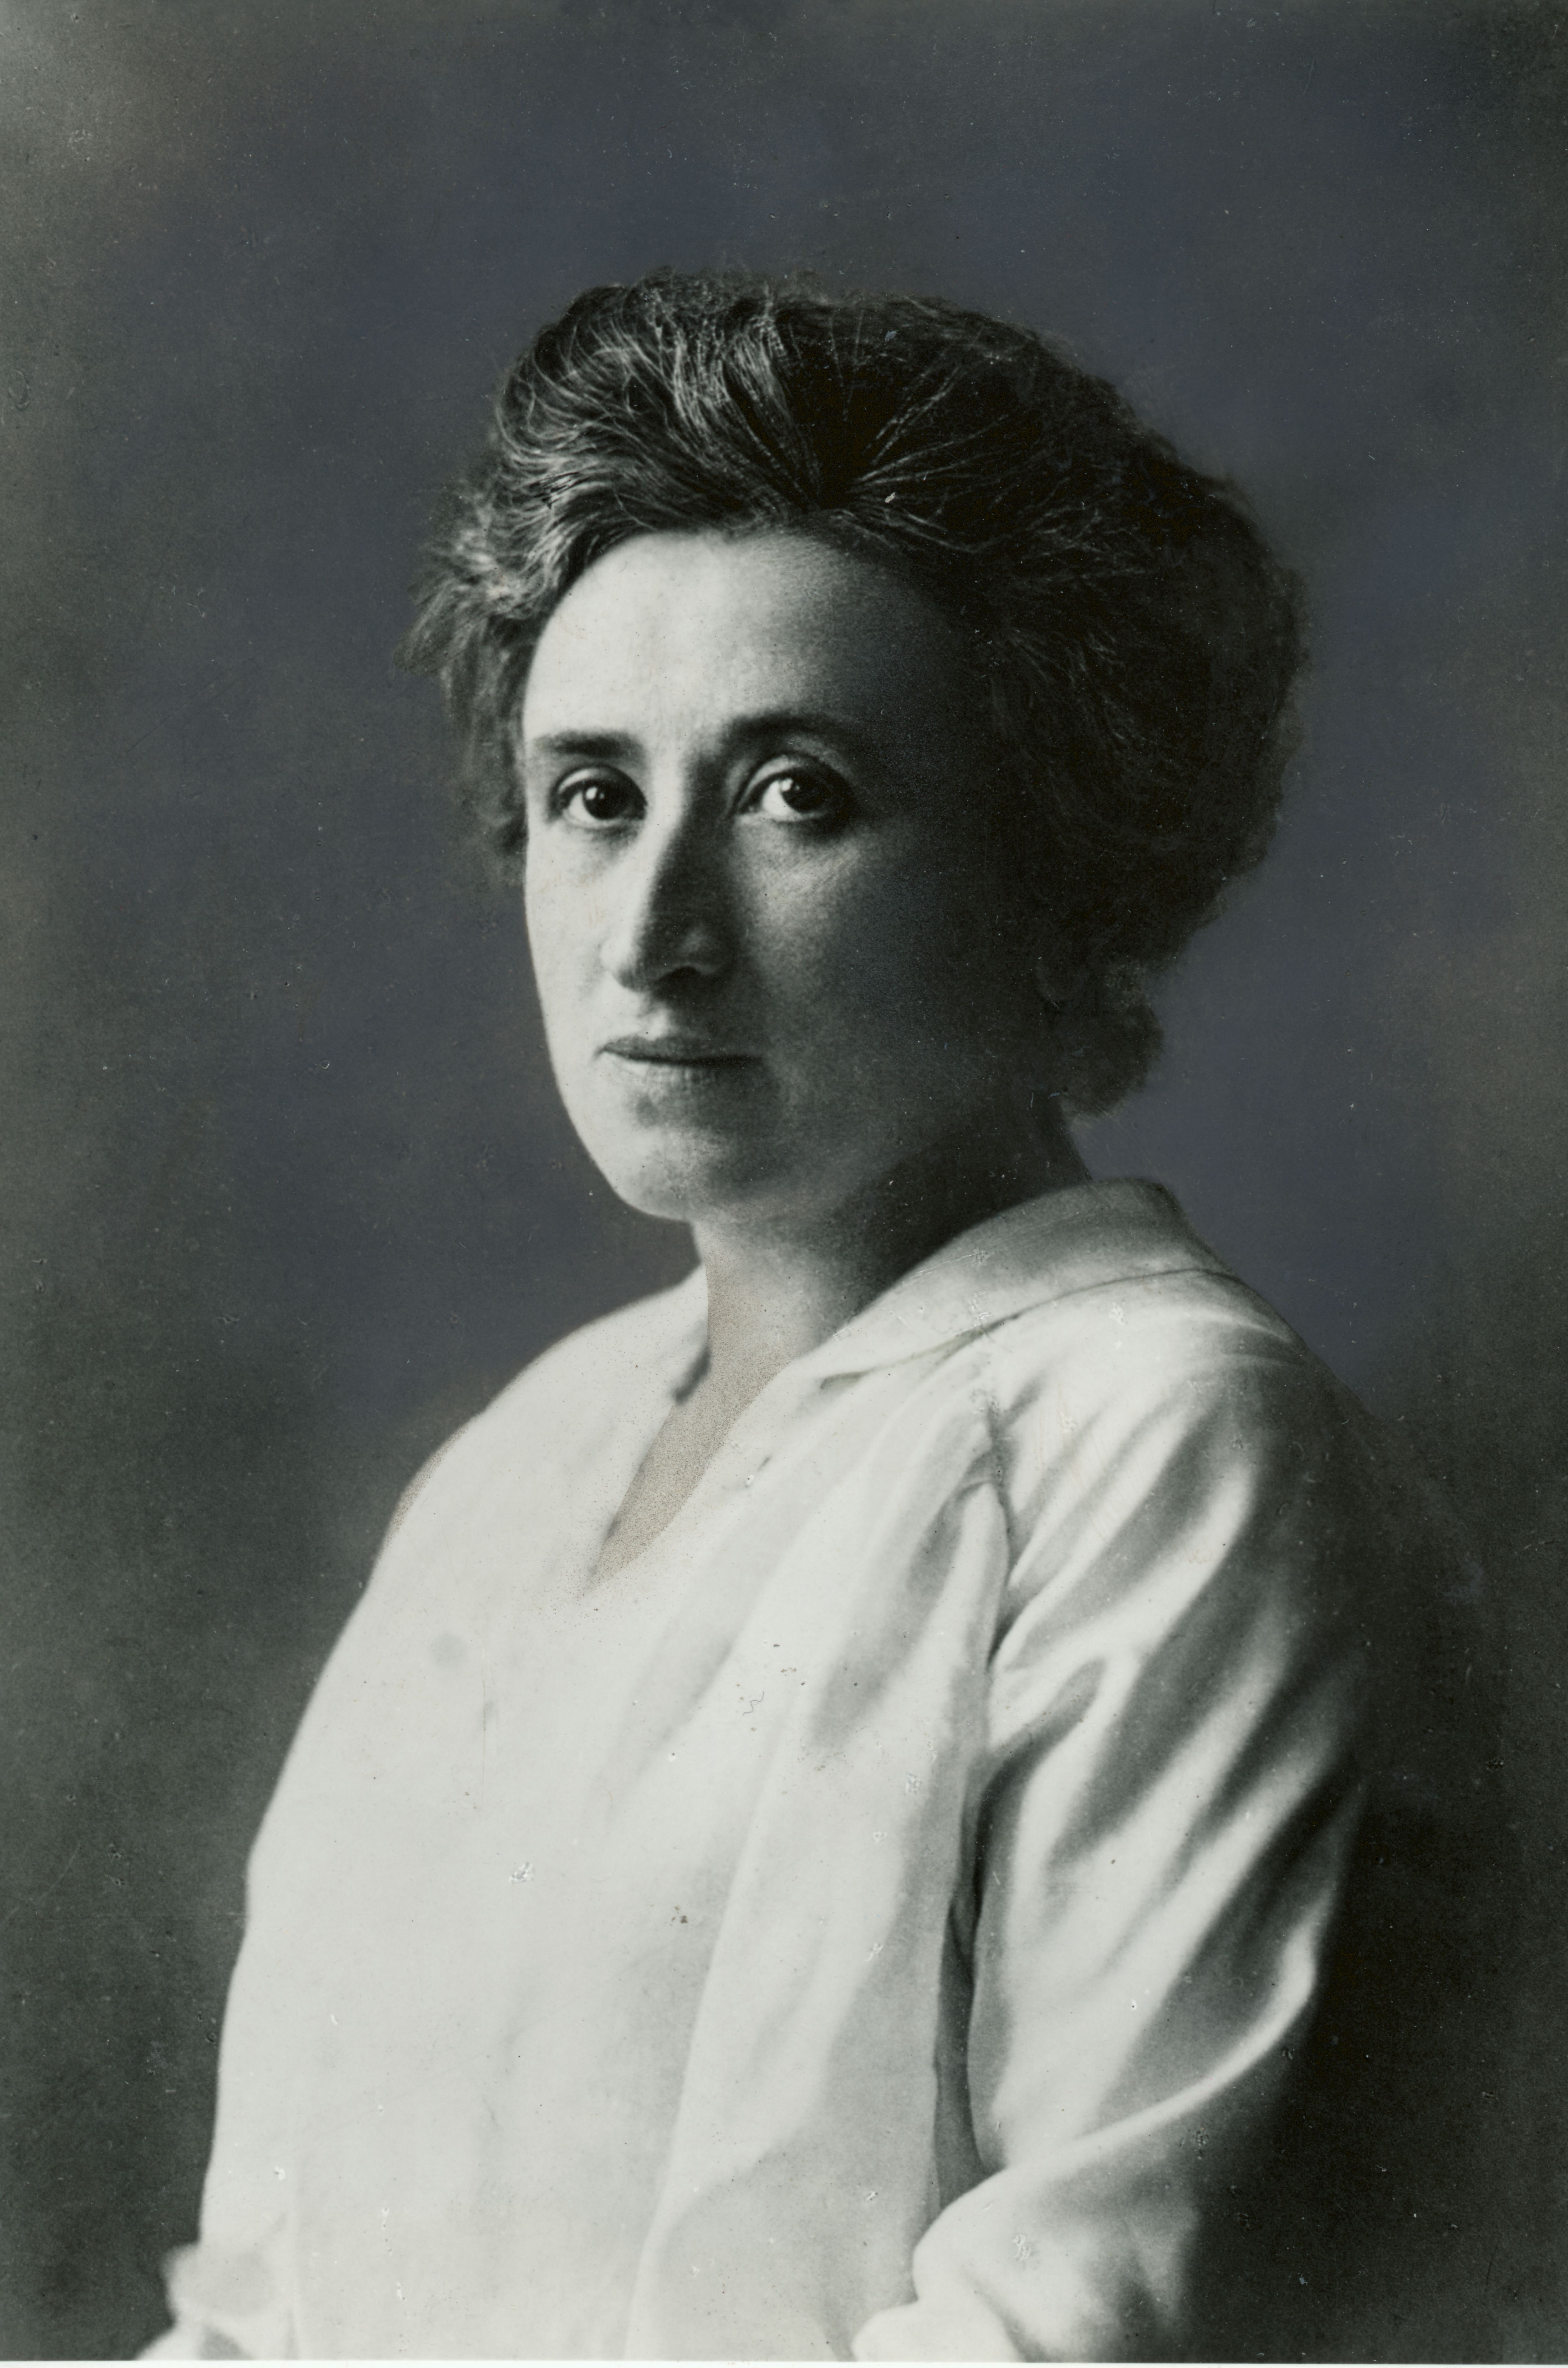 http://upload.wikimedia.org/wikipedia/commons/5/52/Rosa_Luxemburg.jpg